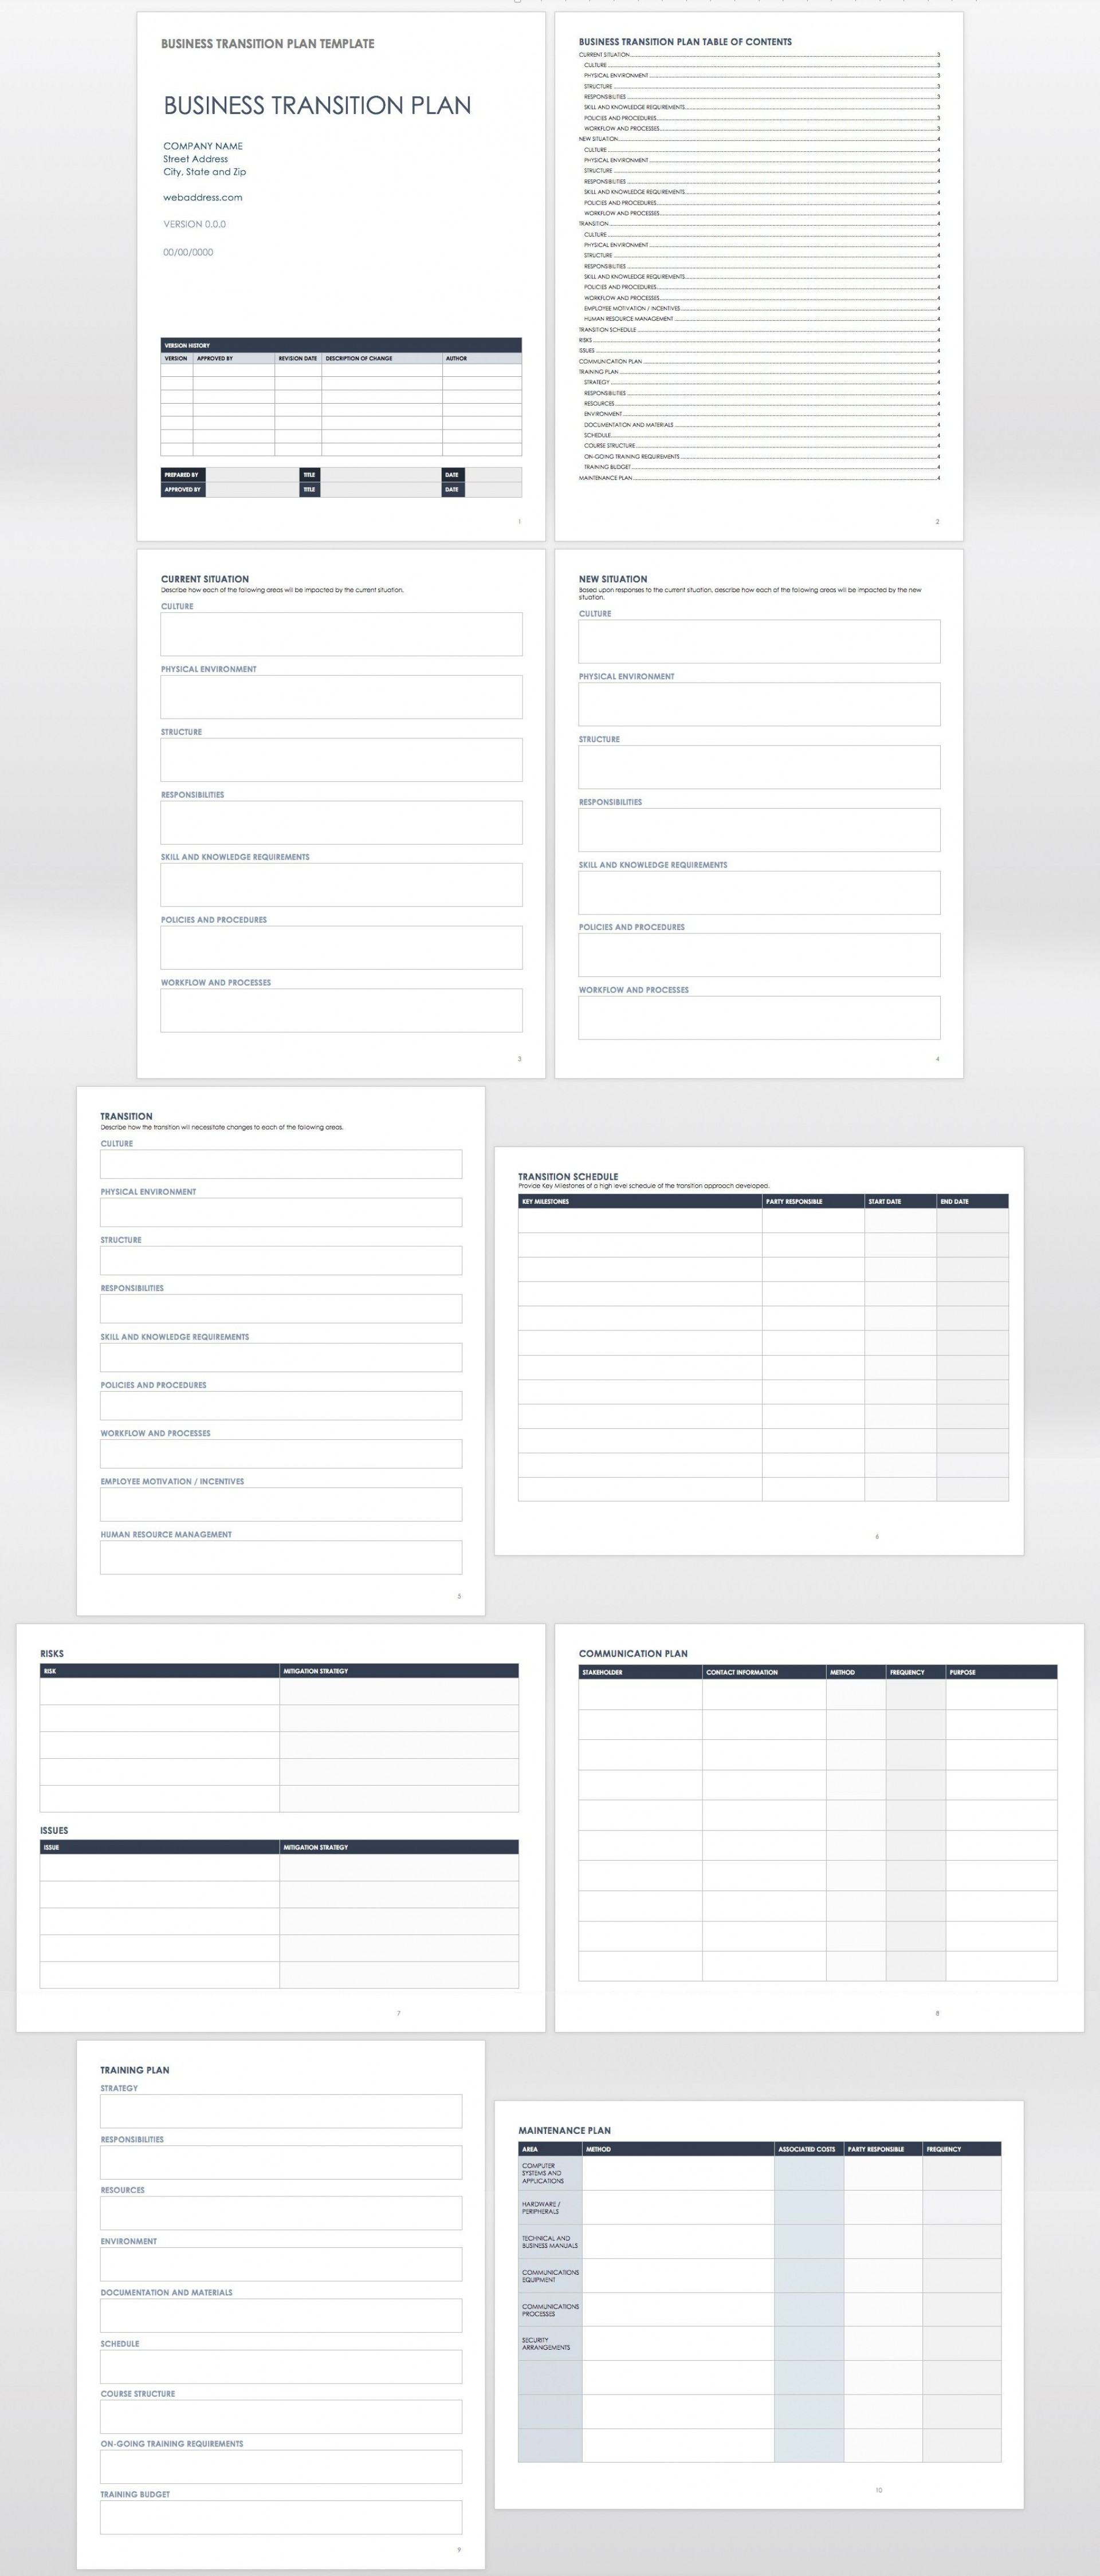 004 Imposing Project Transition Plan Template Idea  Excel Download Software Sample1920